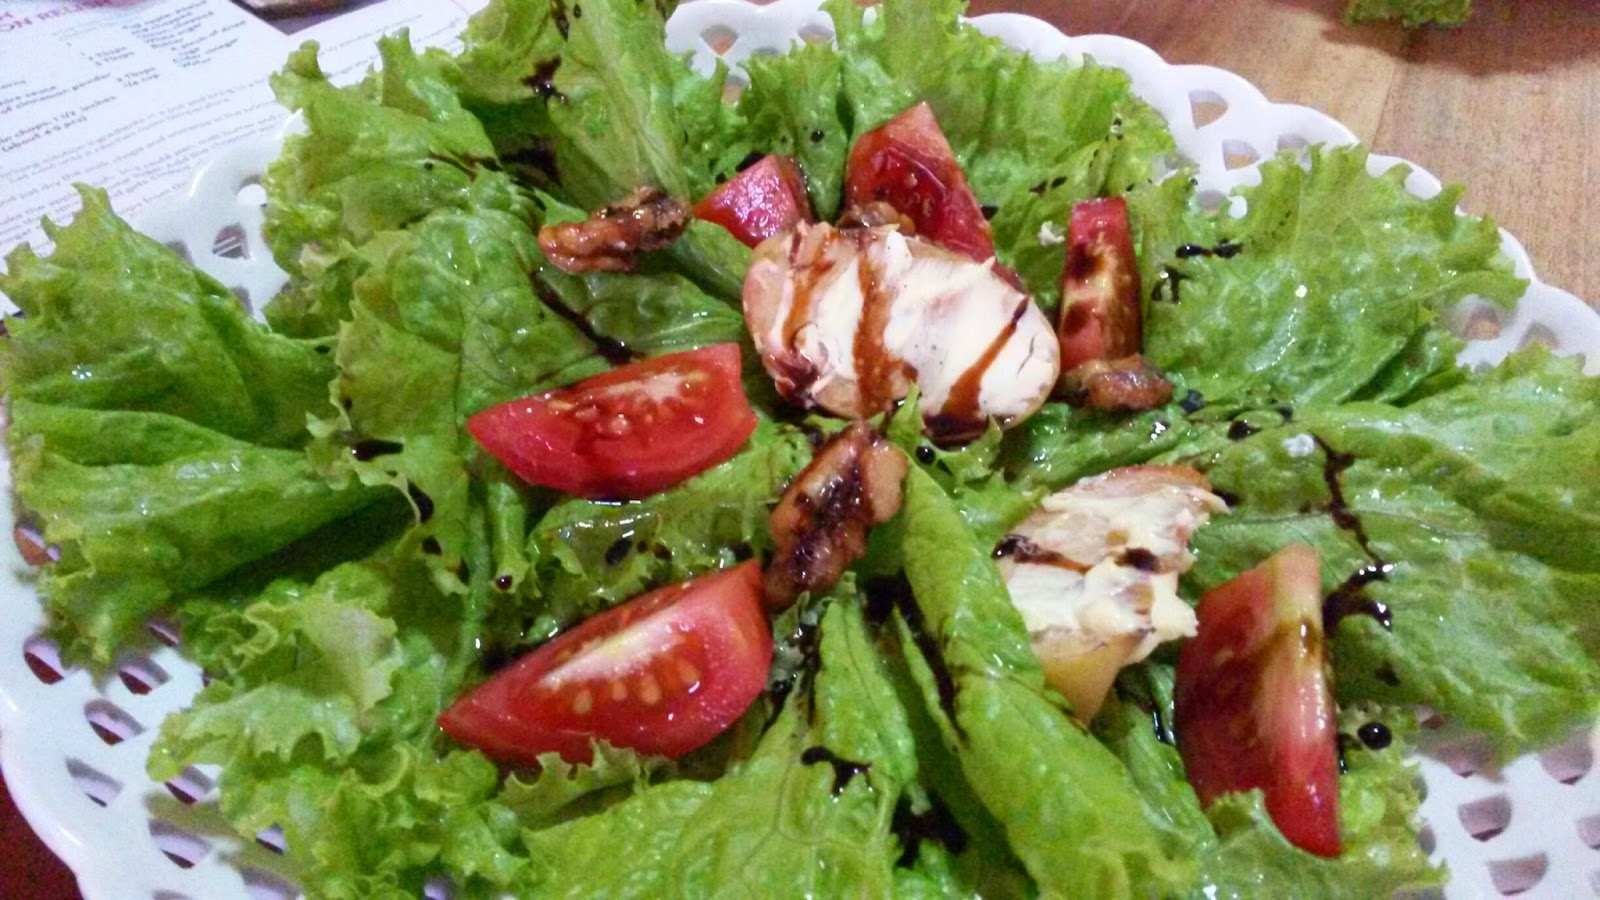 Salad of baked apples, cheese & walnuts